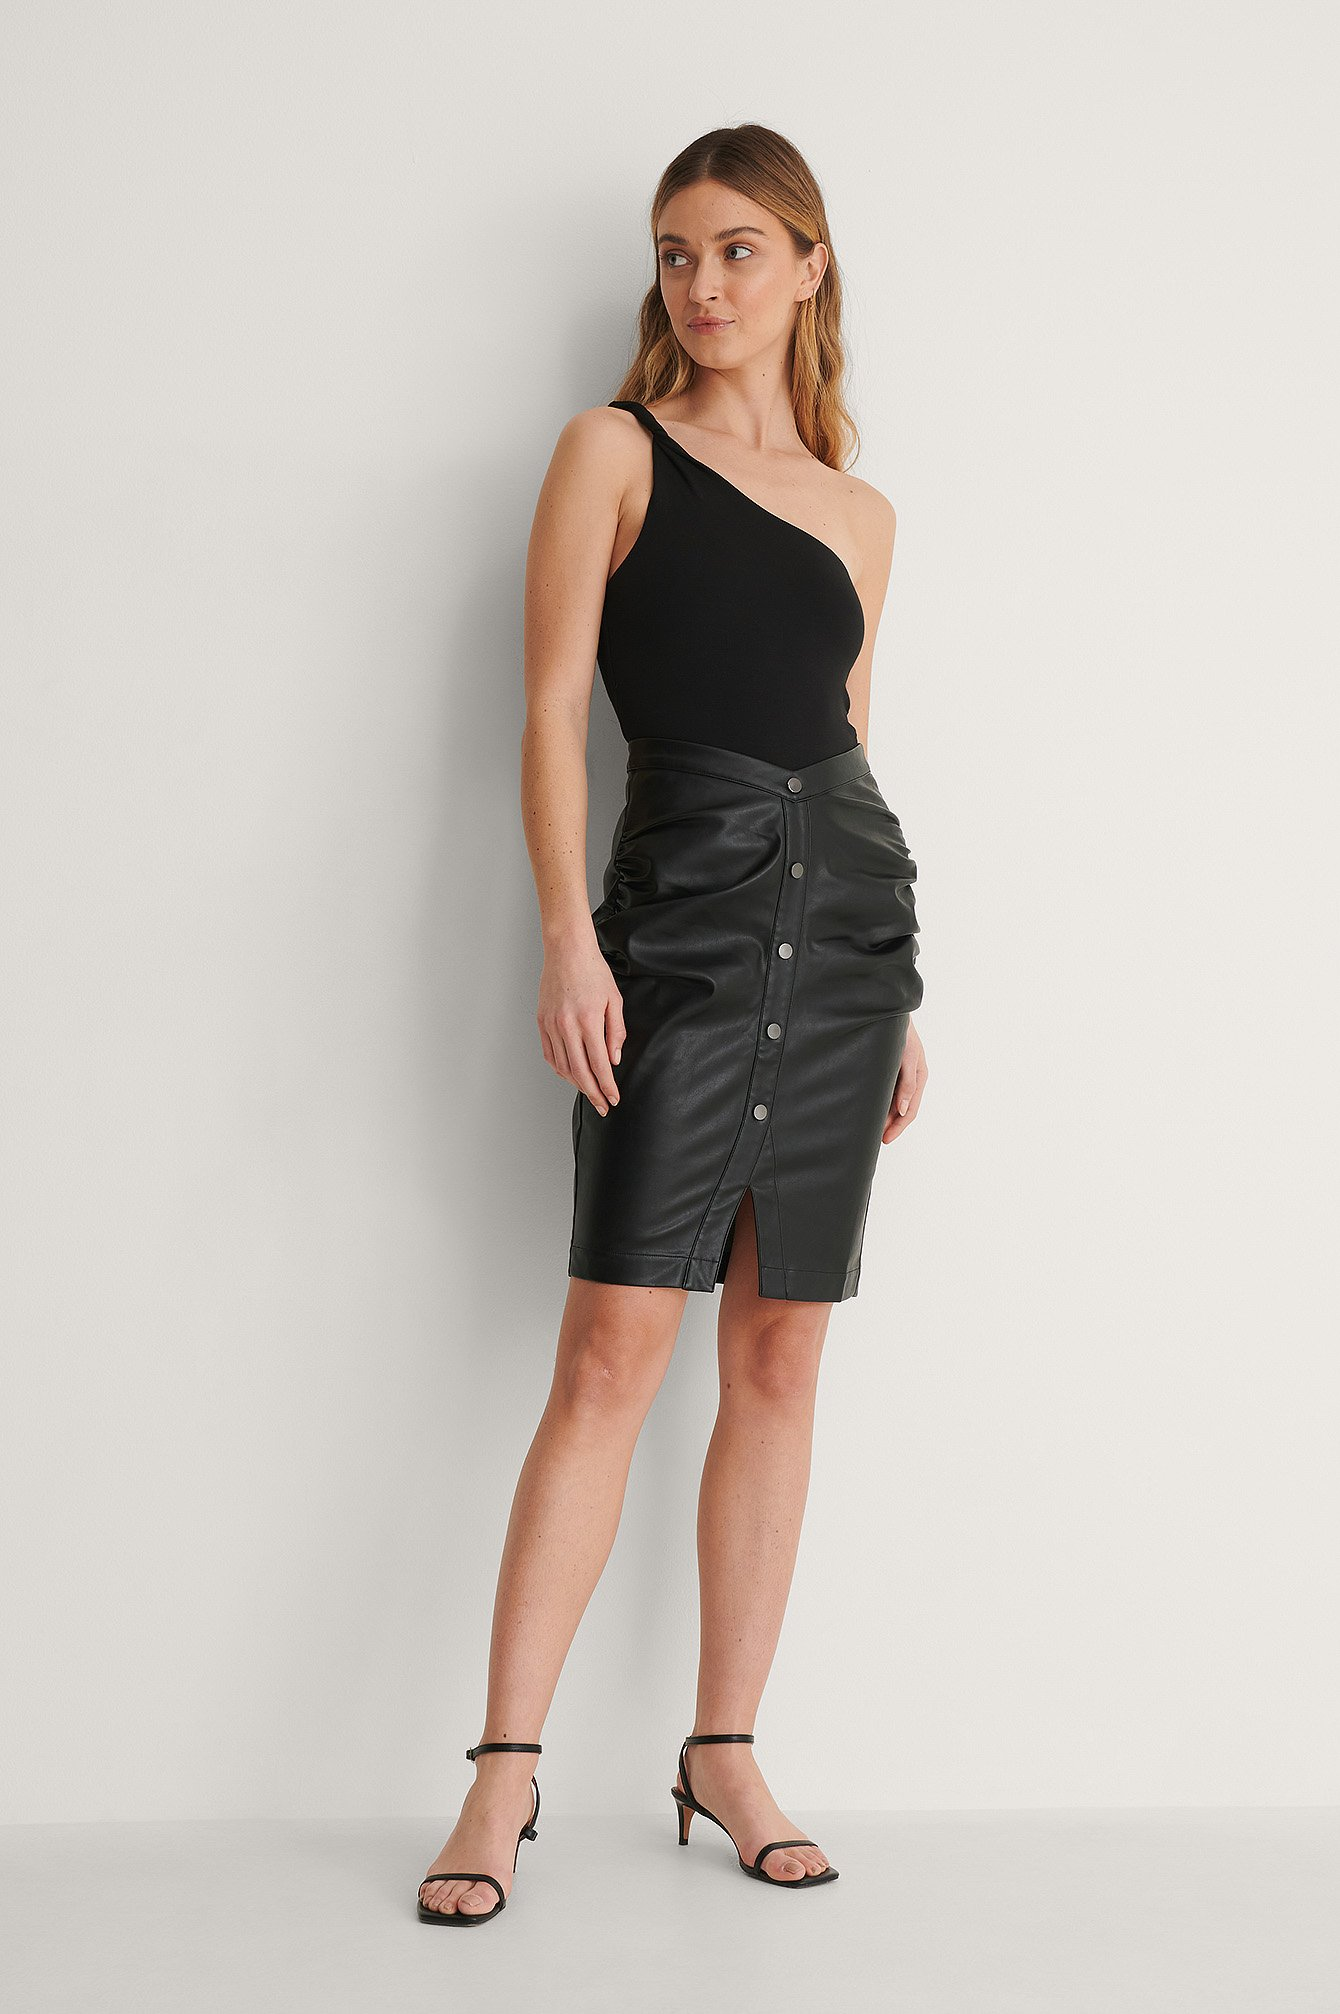 curated styles -  Pu-Rock - Black